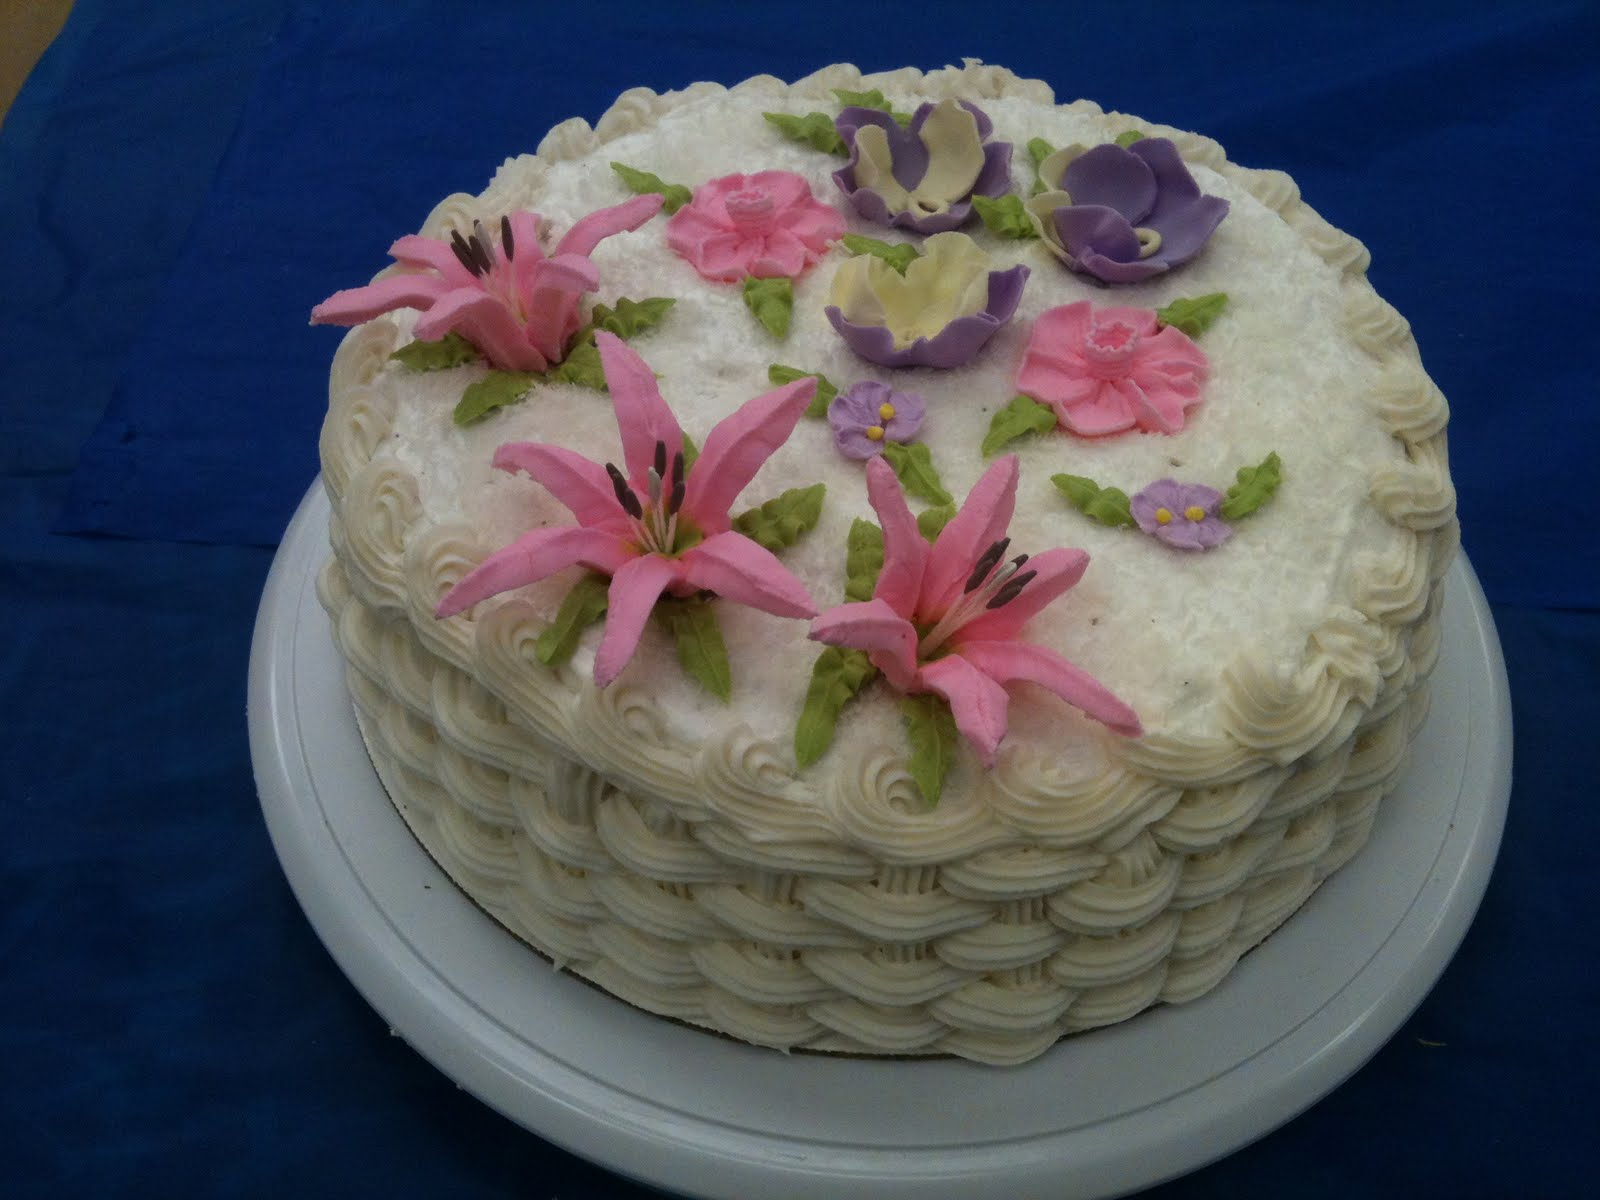 Cake Decorating by Sonia: November 2011 - Course 2 ...